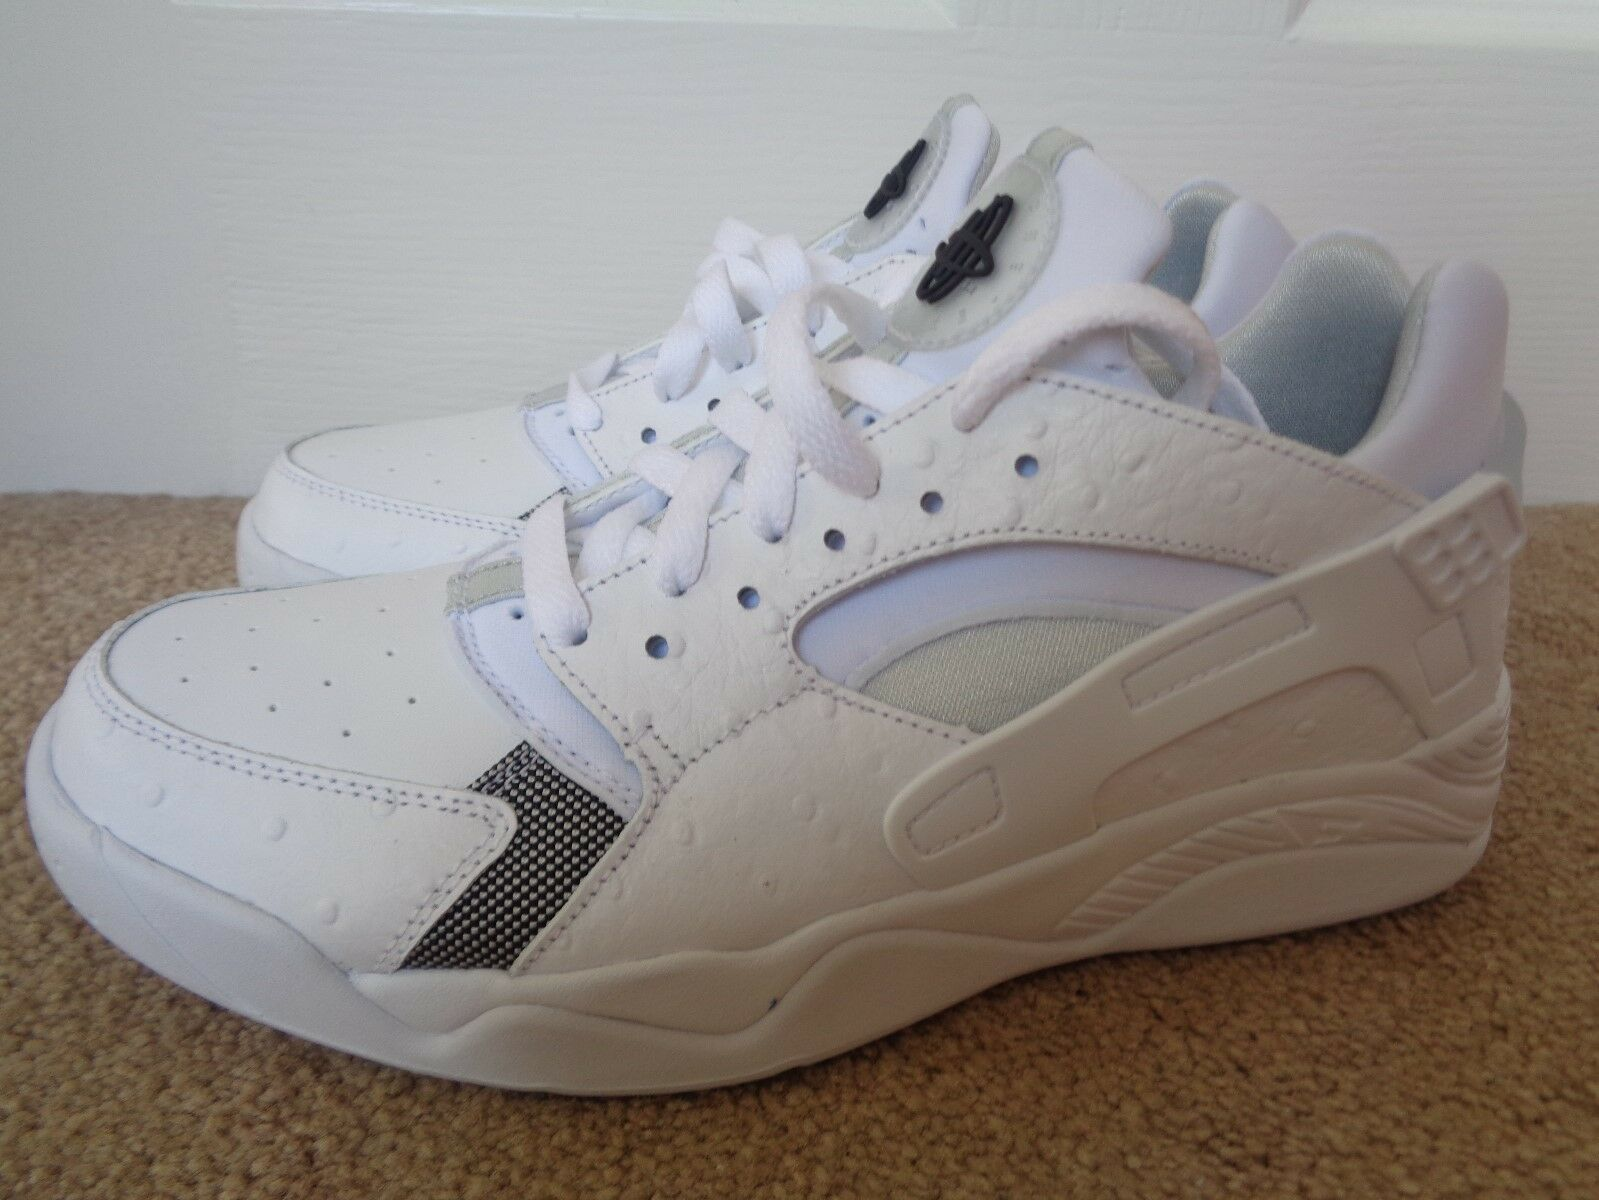 reputable site 33208 57aad ... Nike Air Flight Huarache Low Low Low mens trainers sneakers shoes  819847 100 NEW+BOX ...